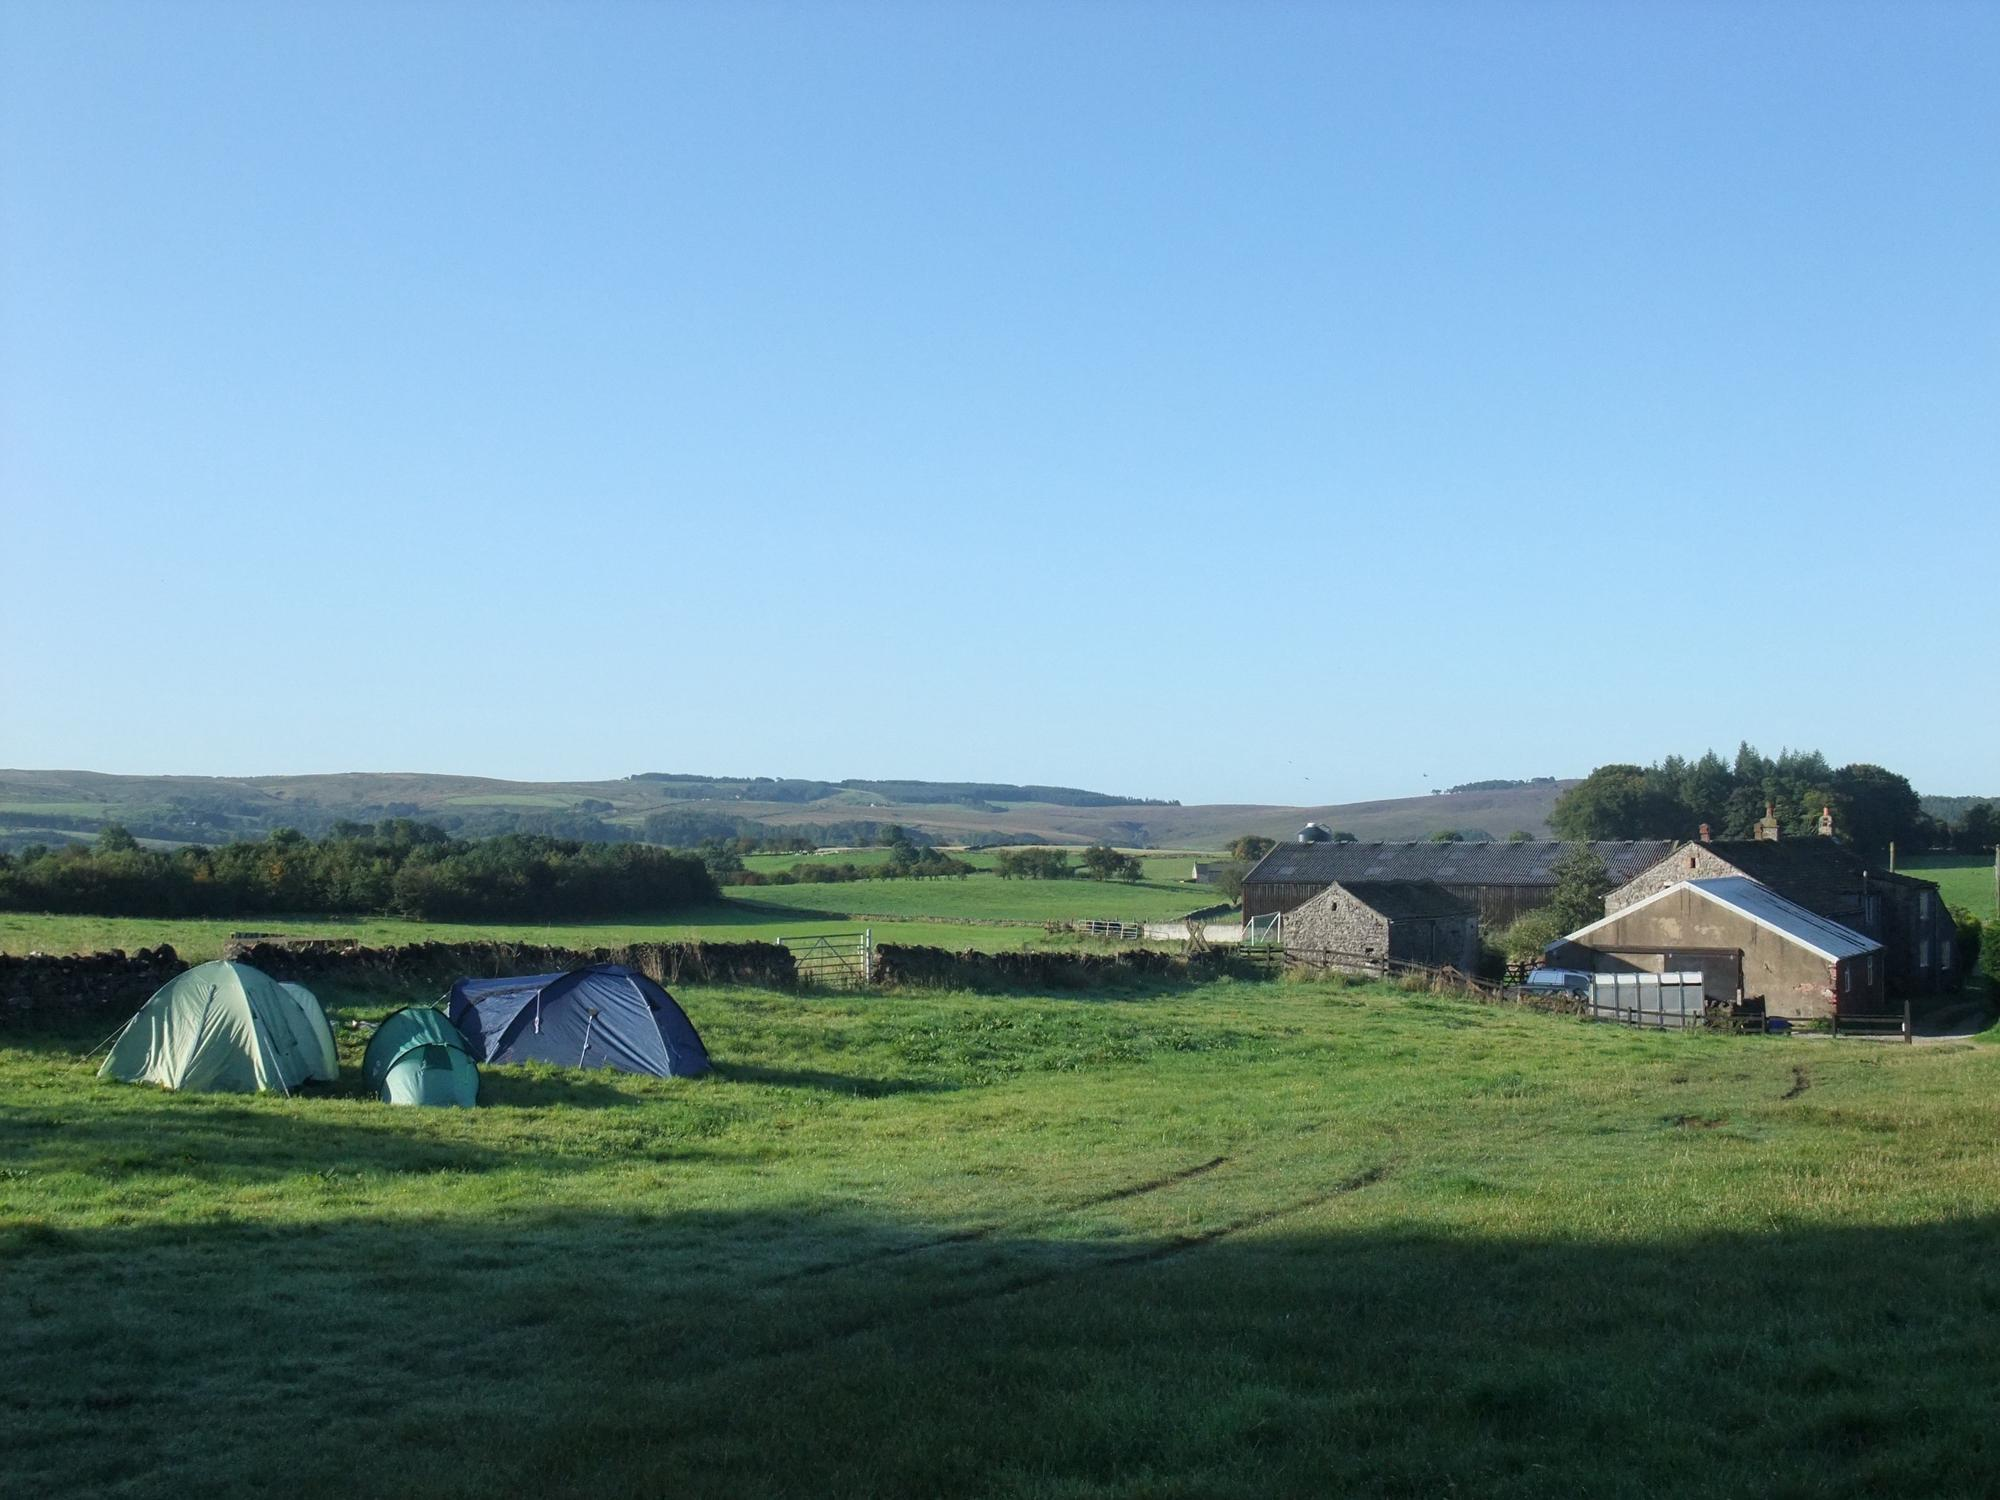 Camping near Manchester - Cool Camping picks out the best